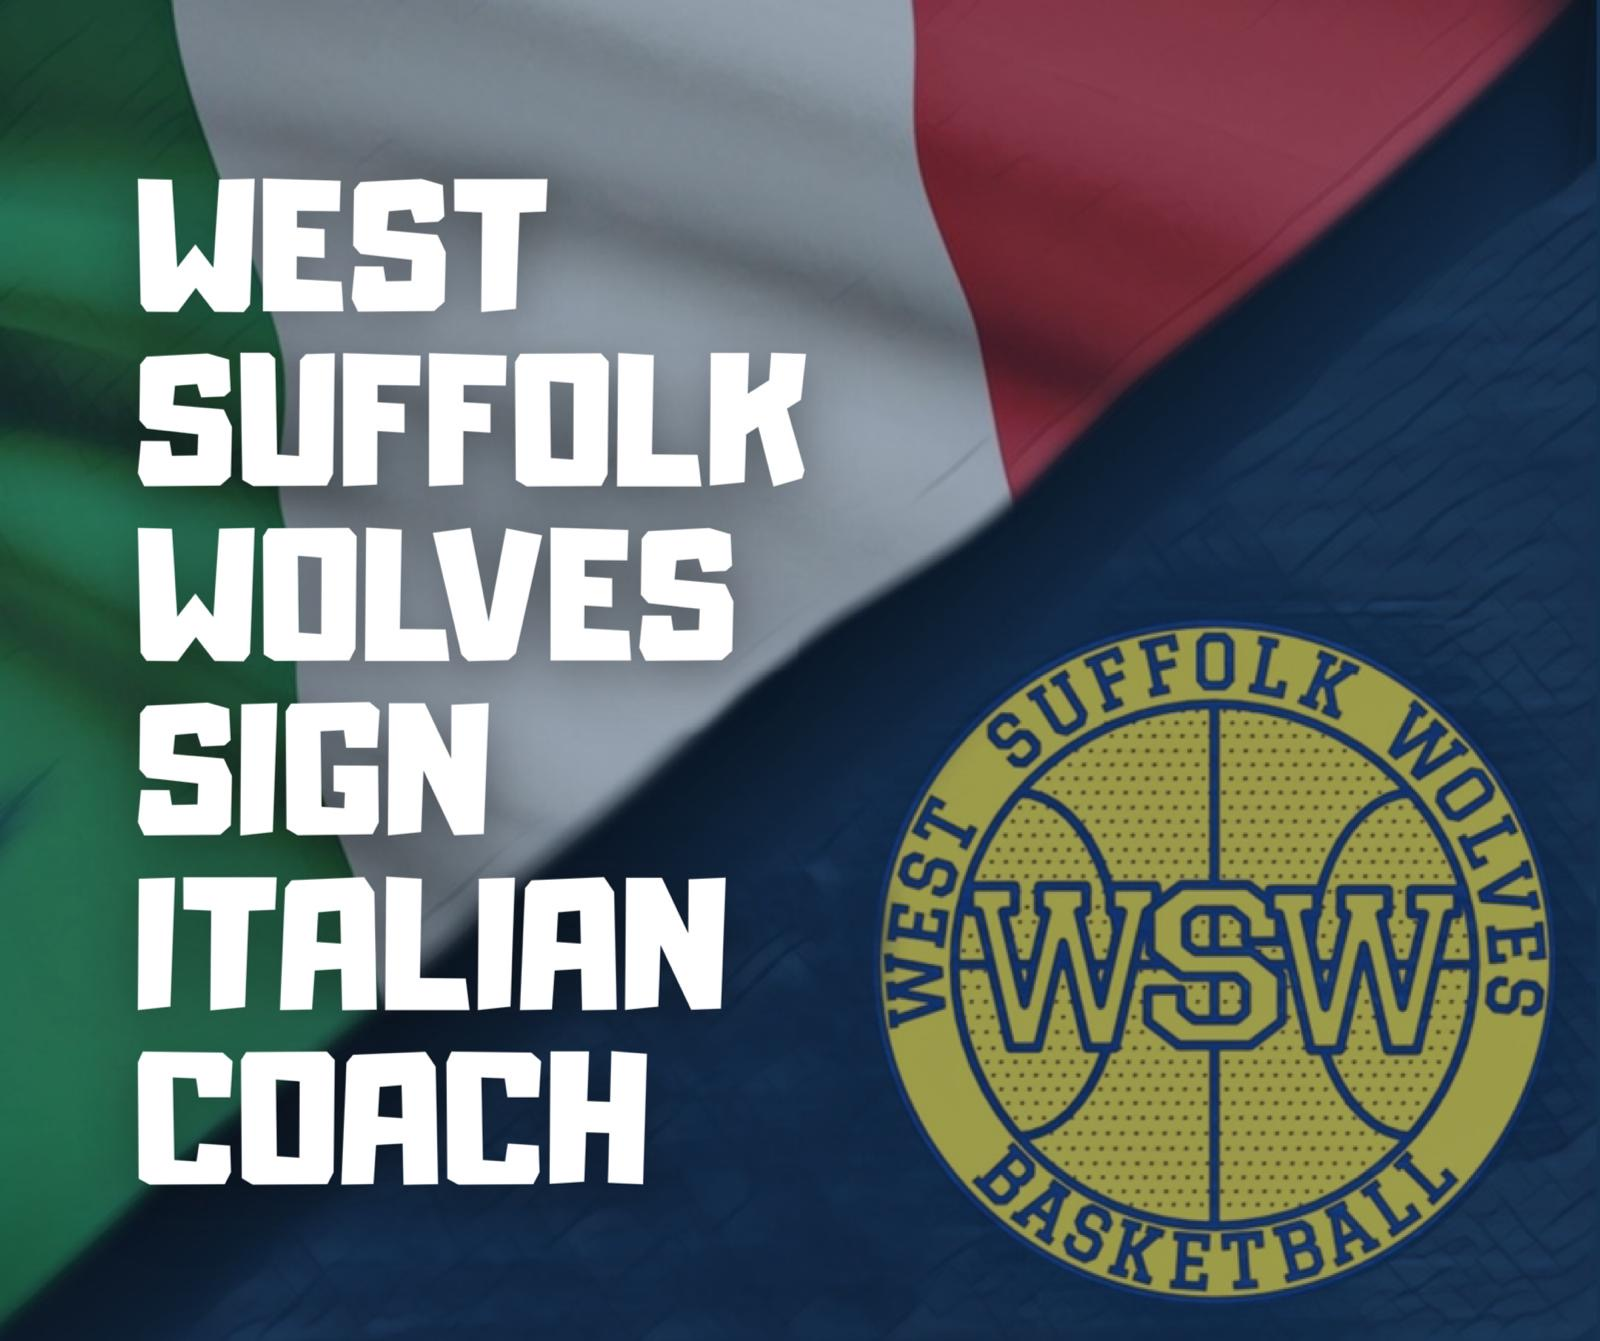 THE WEST SUFFOLK WOLVES SIGN AN ITALIAN COACH